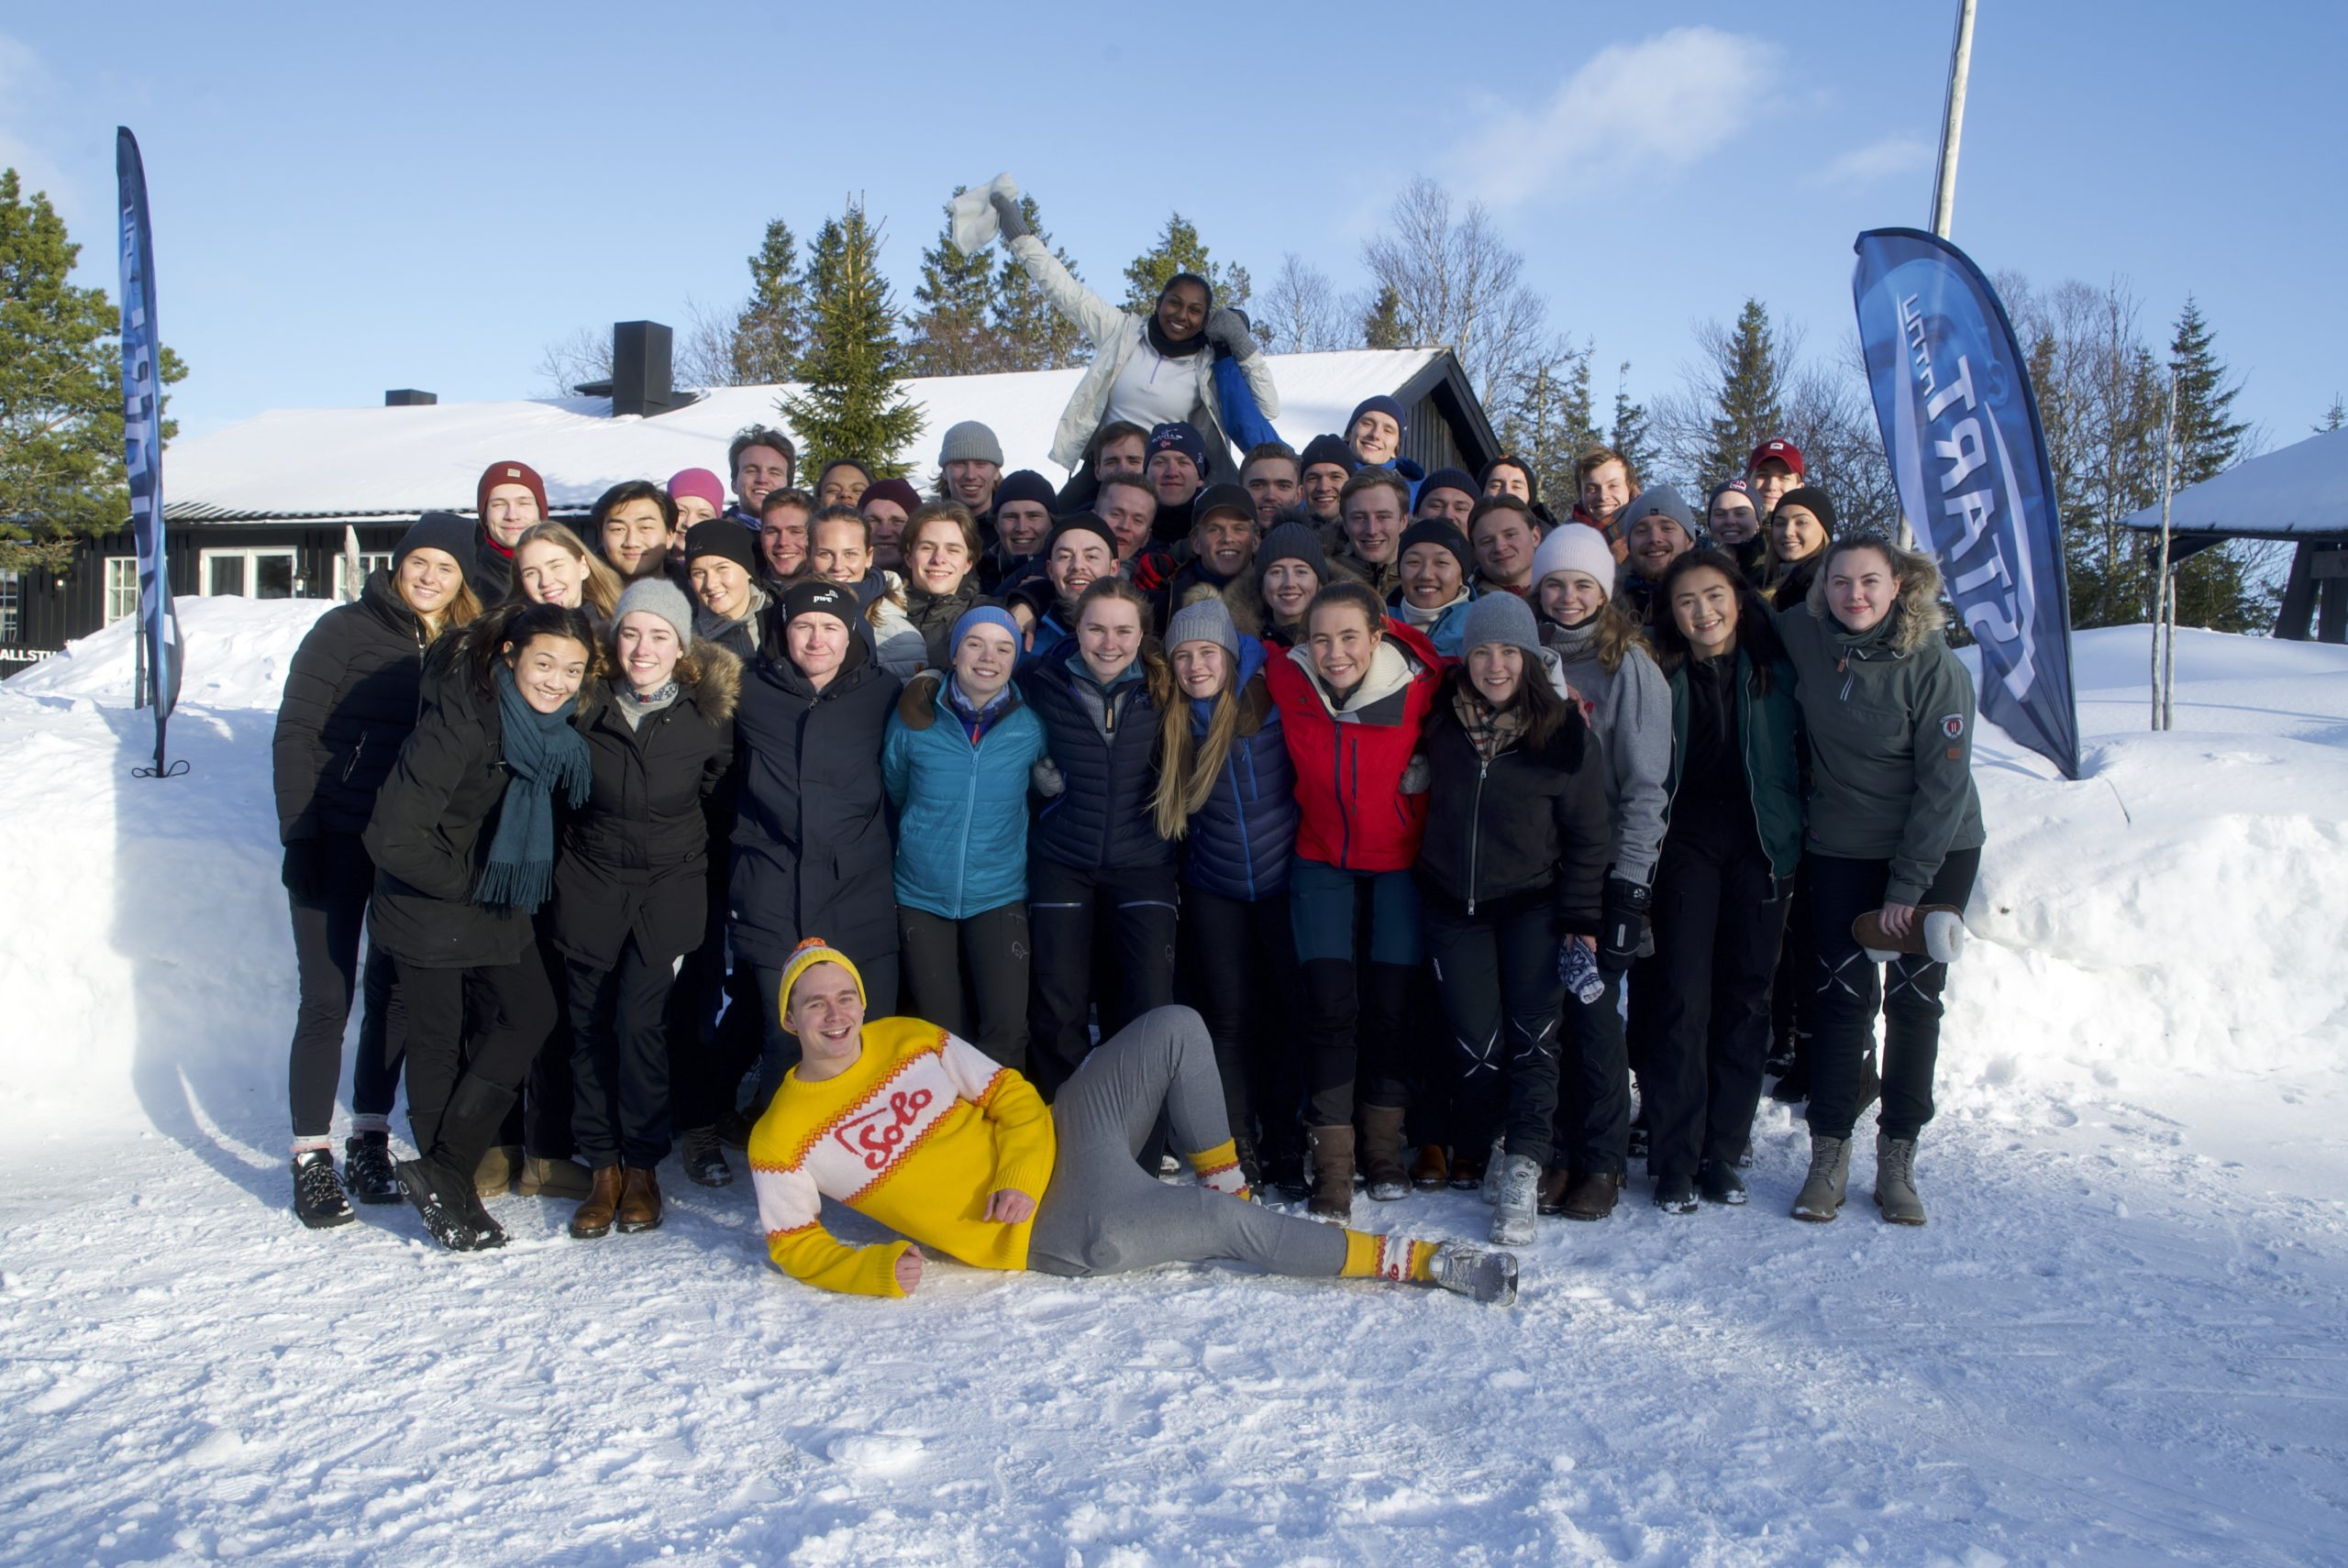 Group photo of the members at Start NTNU